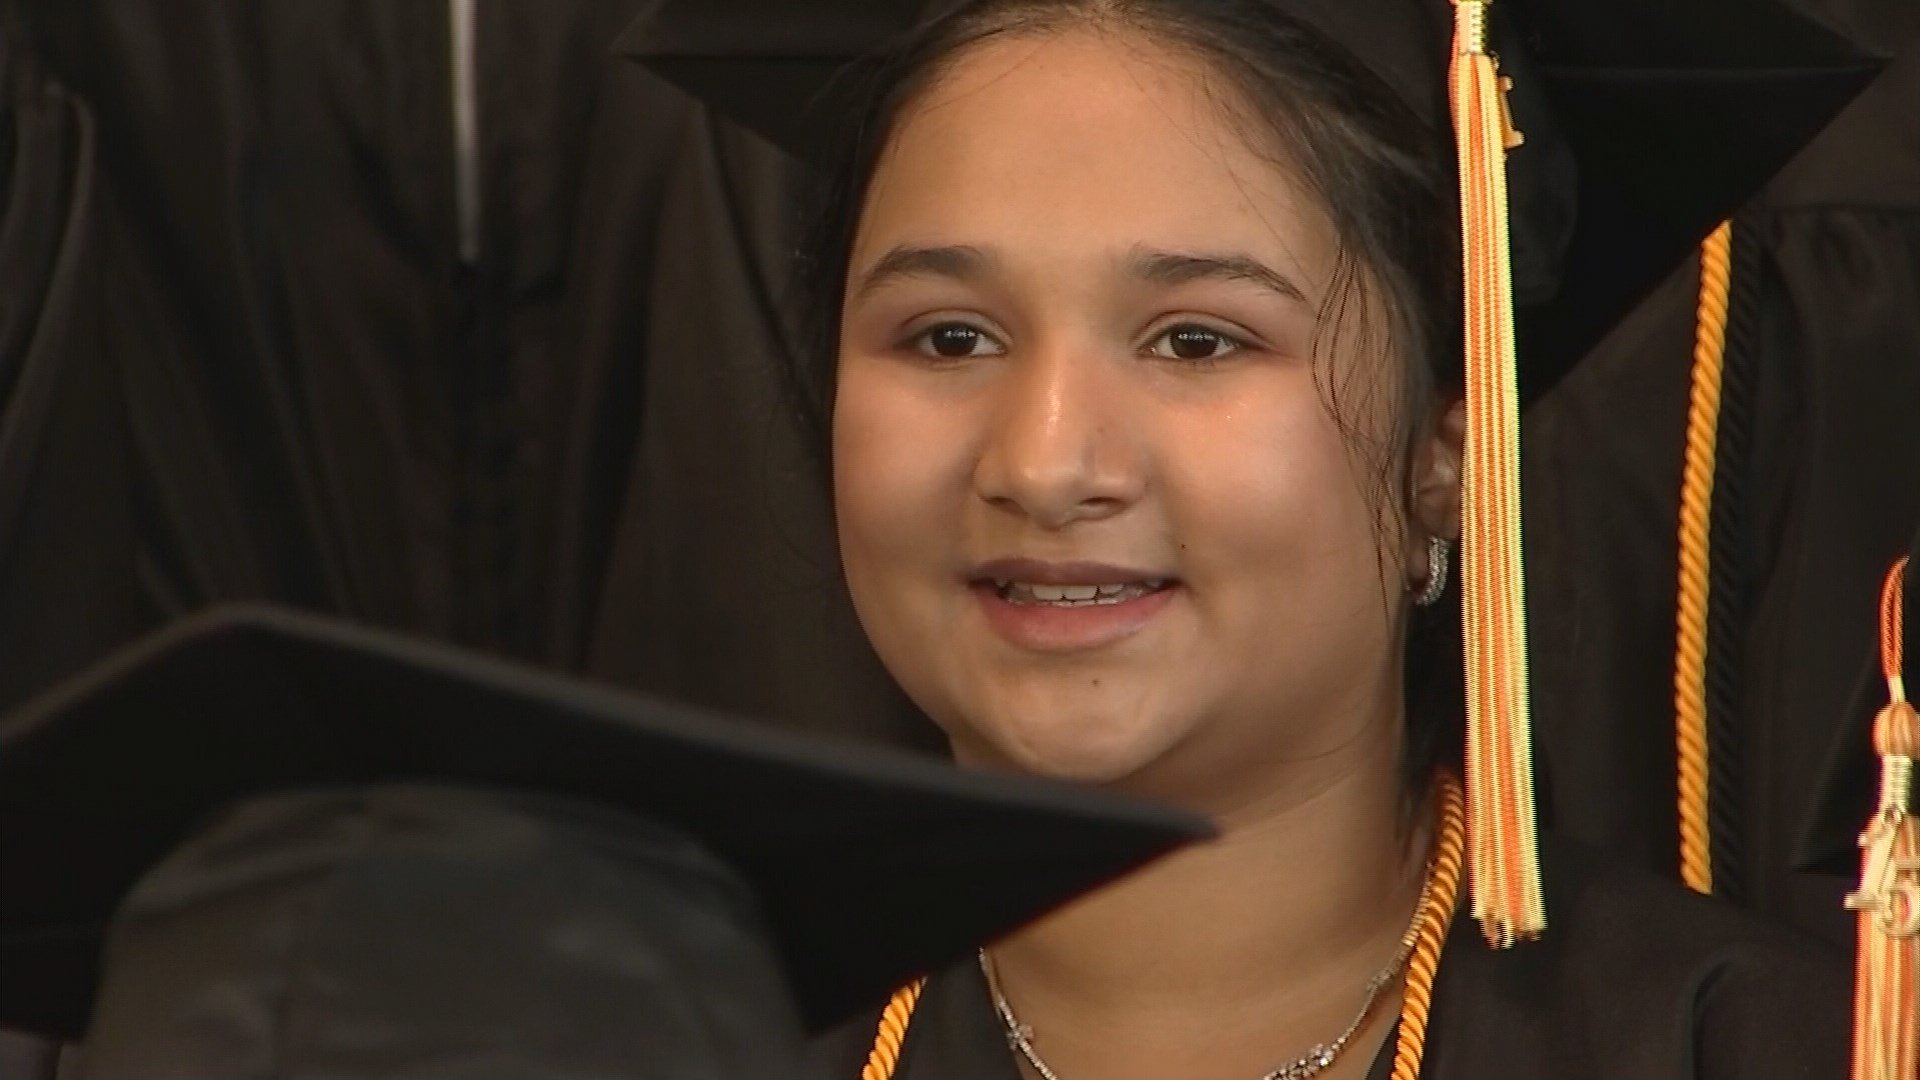 Ria Cheruvu says she will major in neural cryptography at Harvard. (Source: KPHO/KTVK)